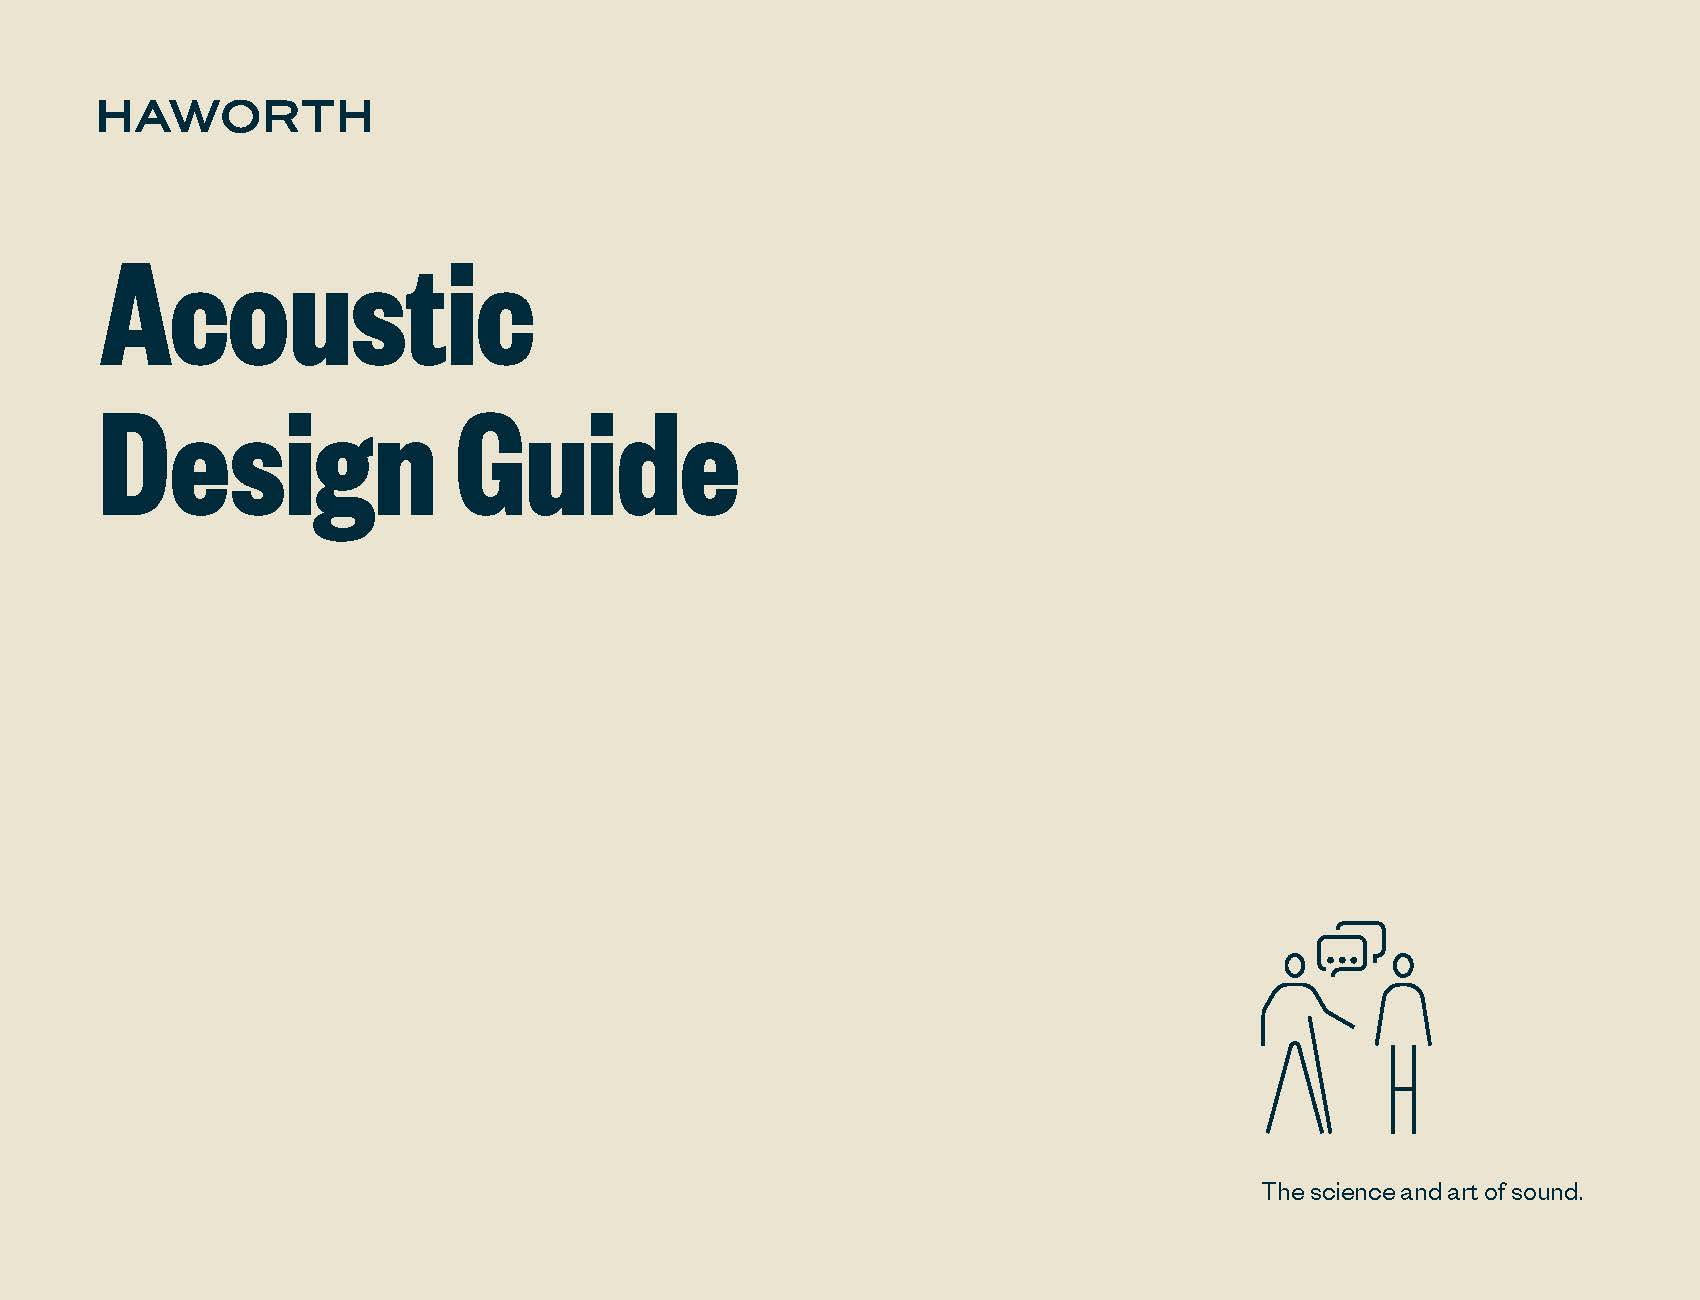 Haworth_Acoustic_Design_Guide cover